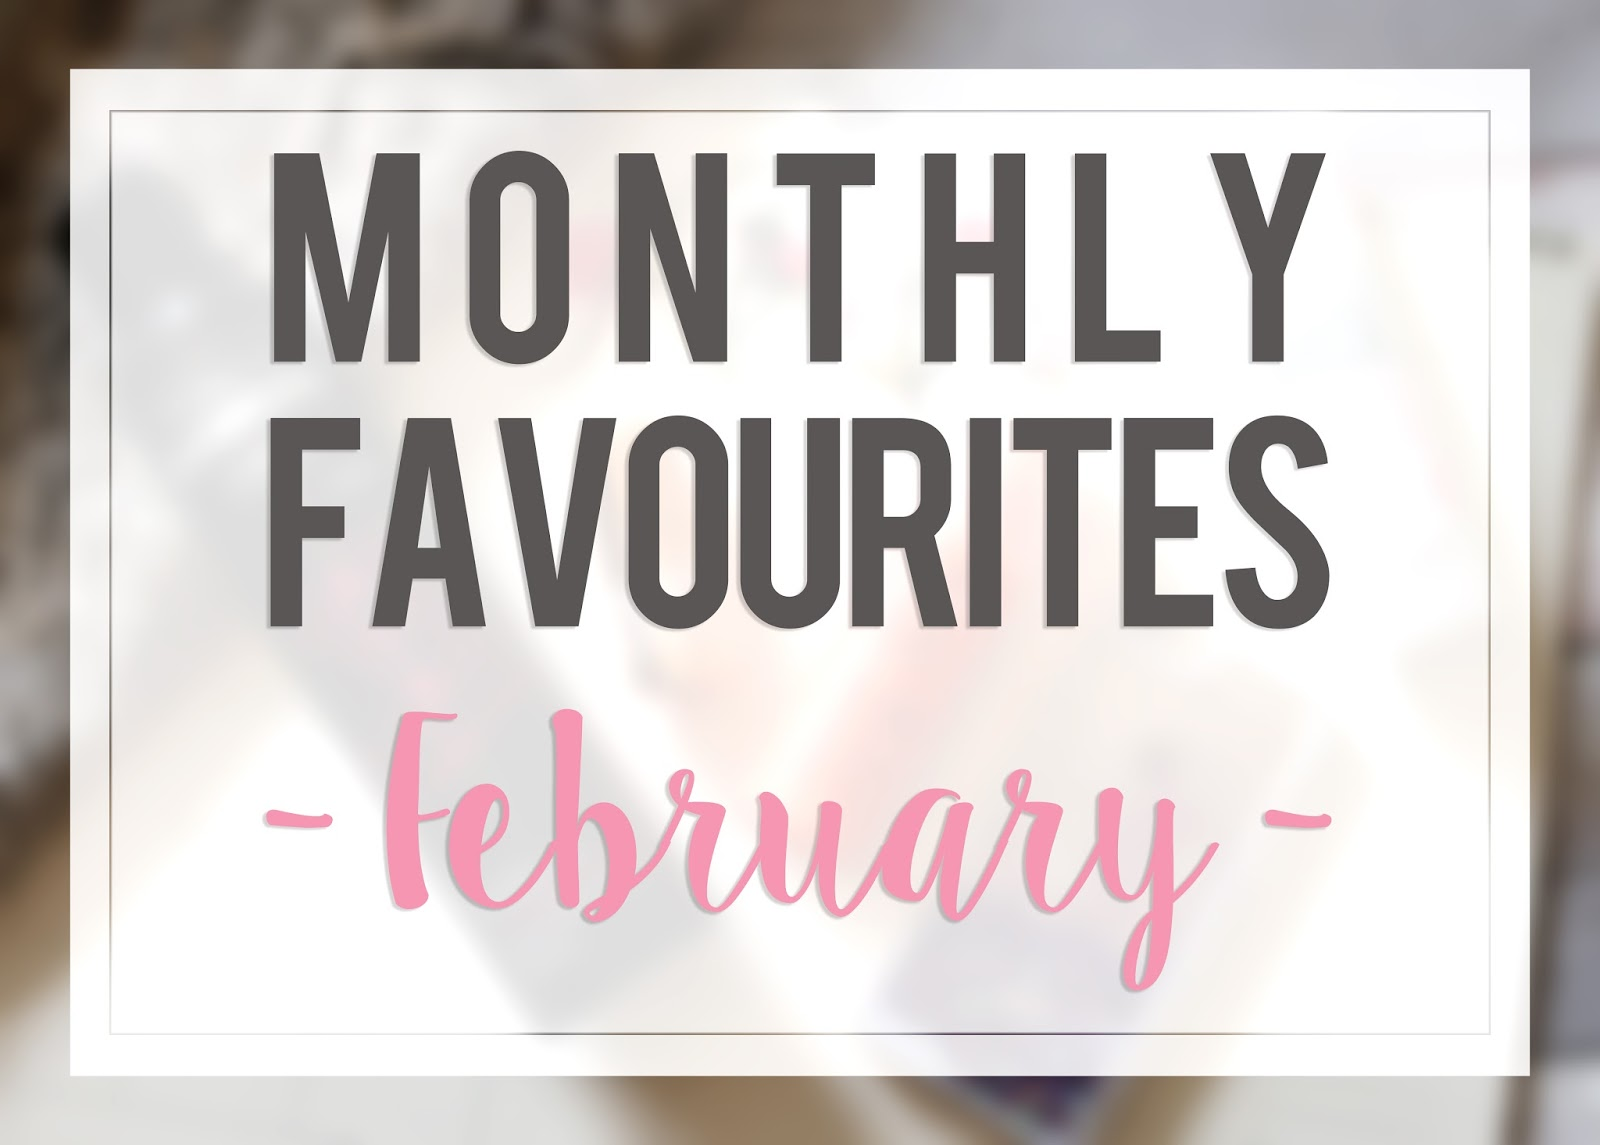 Monthly Favourites February